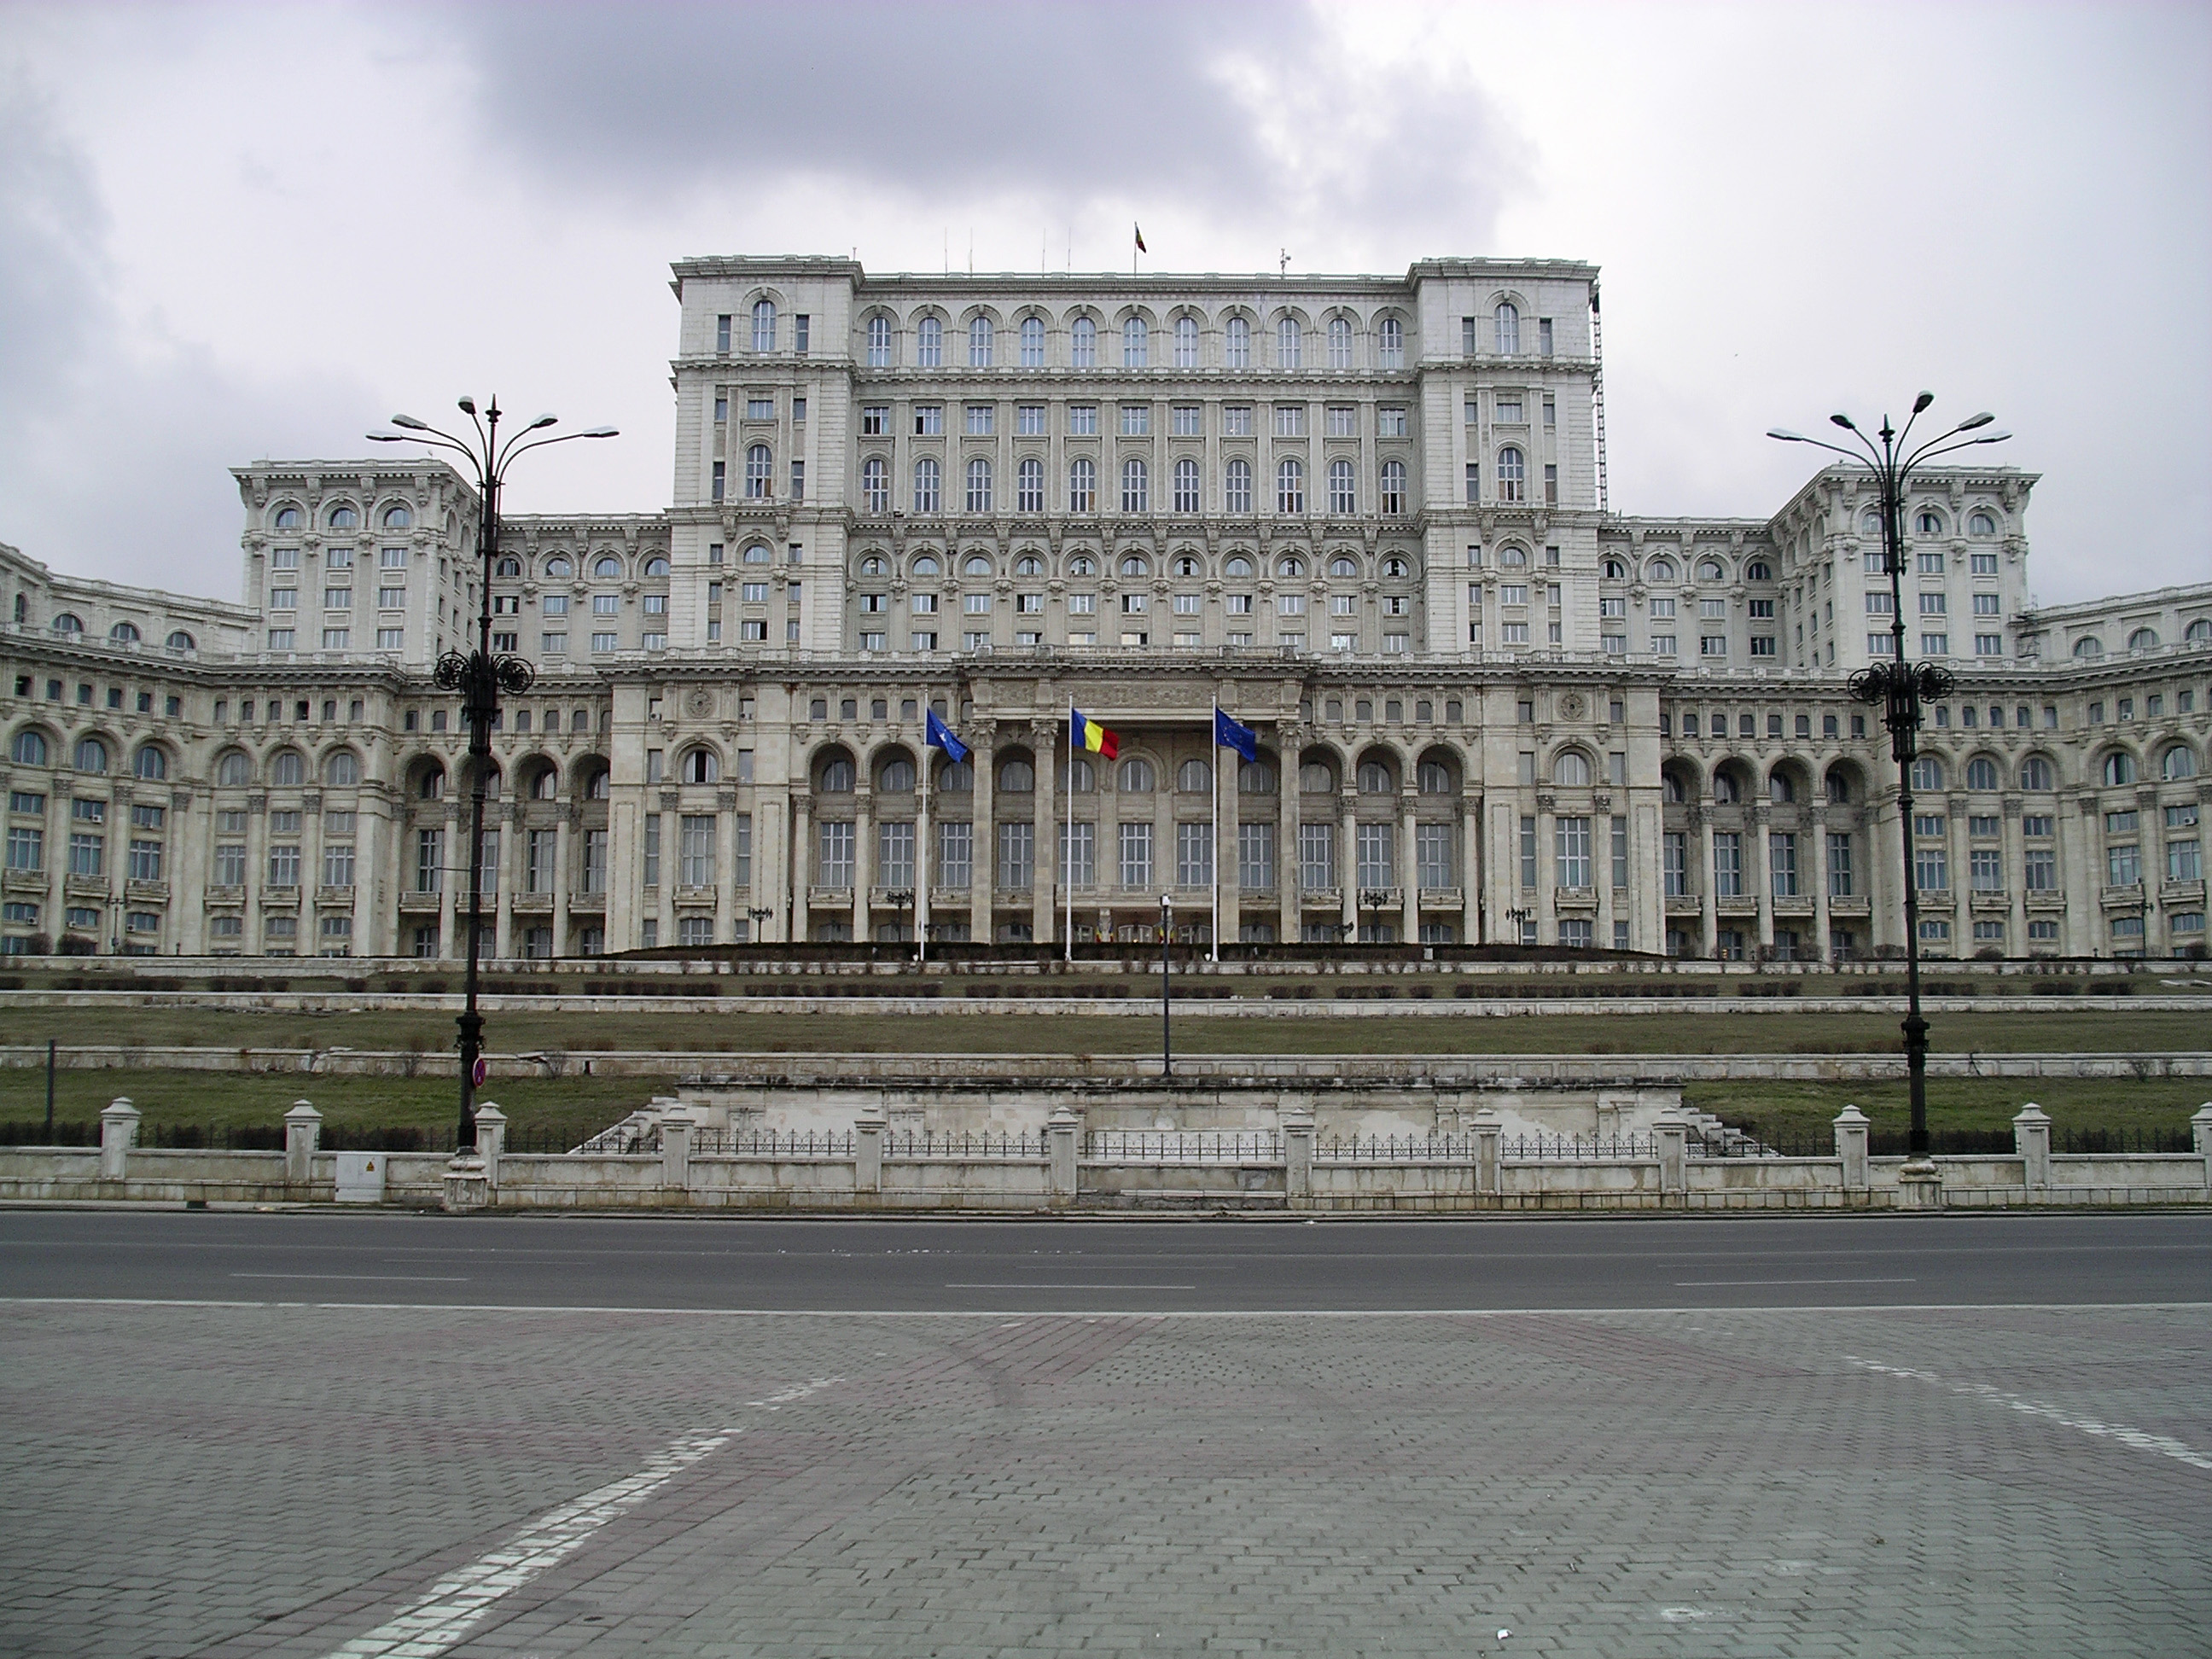 Casa Poporului 14744v furthermore Transalpina An Official Trademark additionally Palazzo Del Parlamento Di Bucarest likewise Bucharest  20the 20People's 20Palace likewise Futuristic Turda Salt Mine. on romania palace